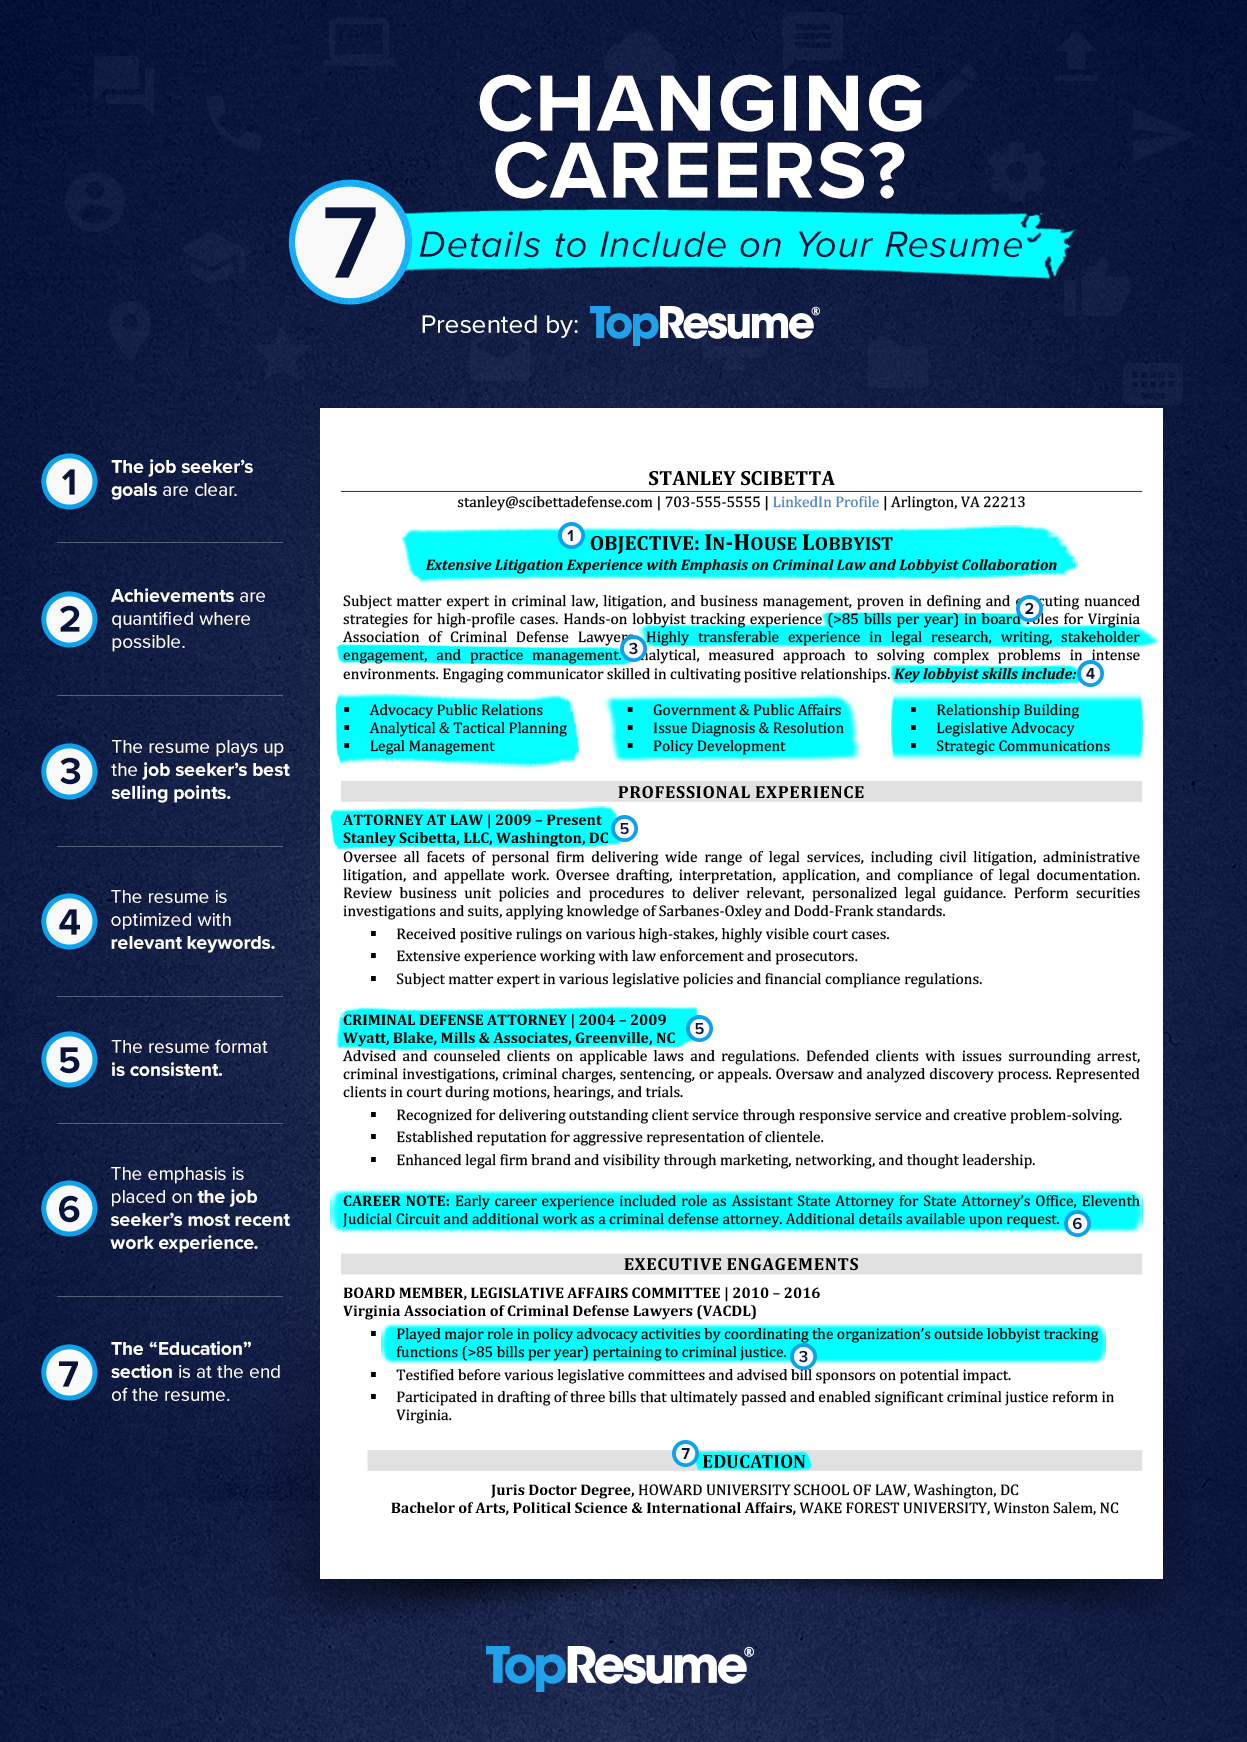 changing careers details to include on your resume topresume career aspirations examples Resume Career Aspirations Examples Resume